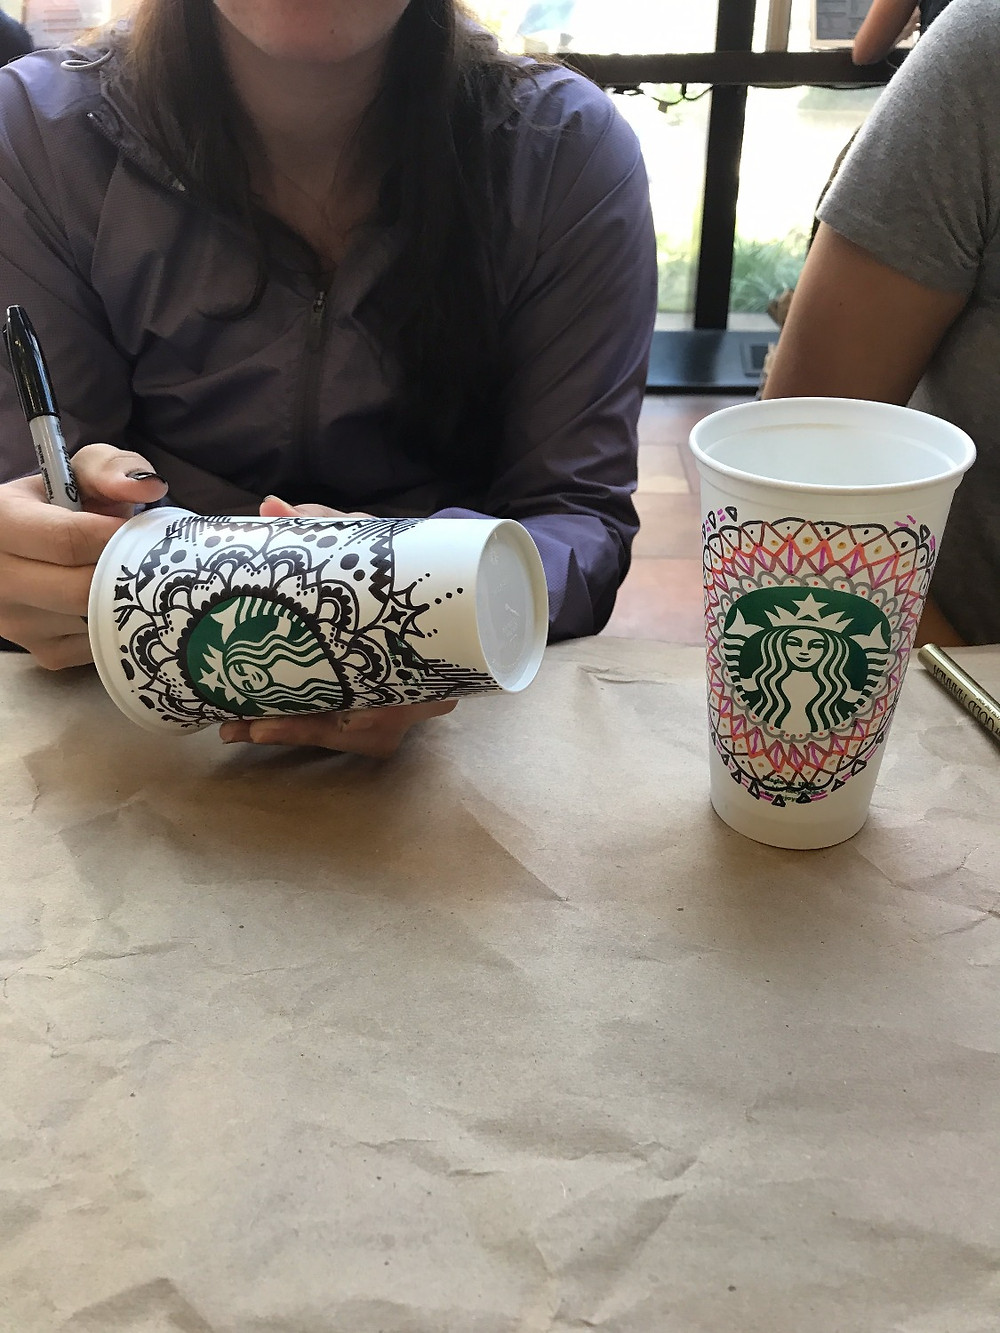 A close up view of two Starbucks cups that were decorated.